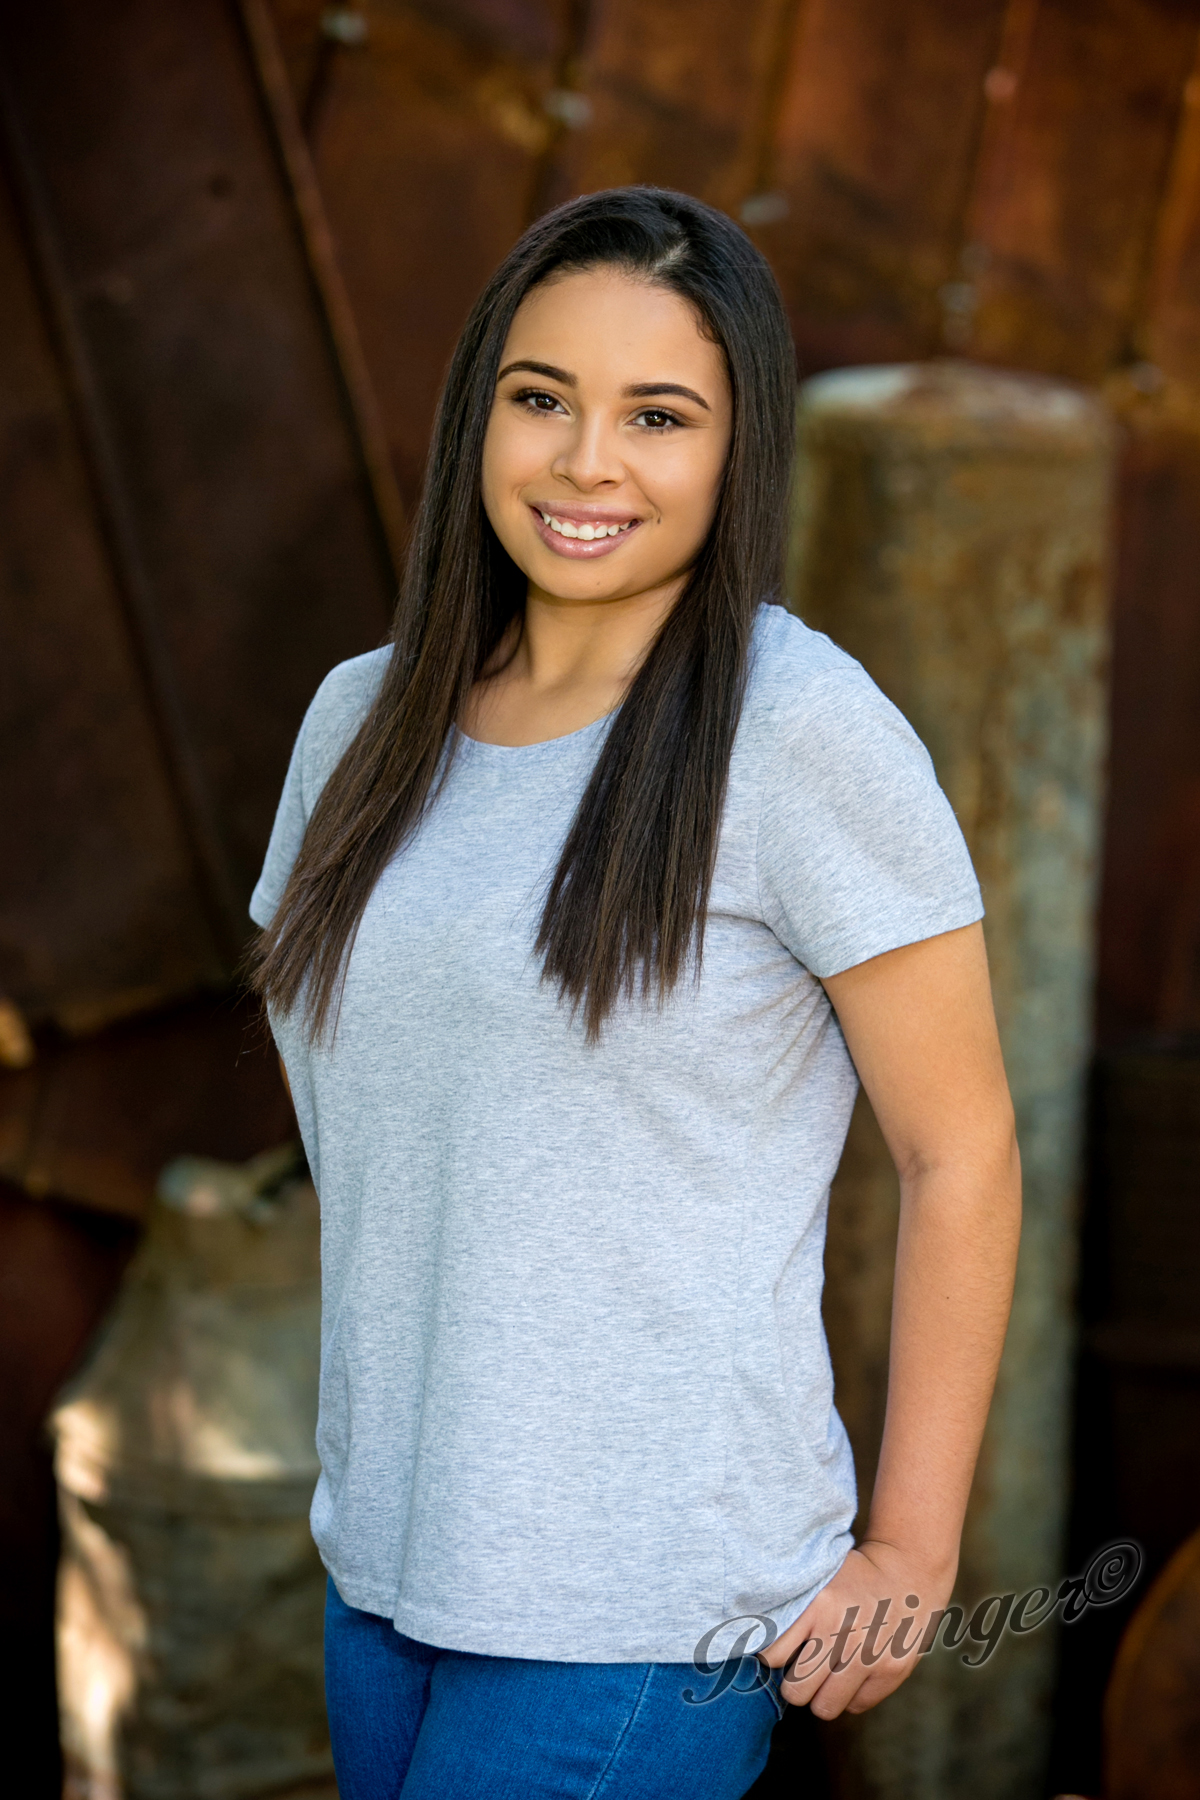 - We love the sweet and simple looks of Anastasia in her senior portraits. Have a great year!